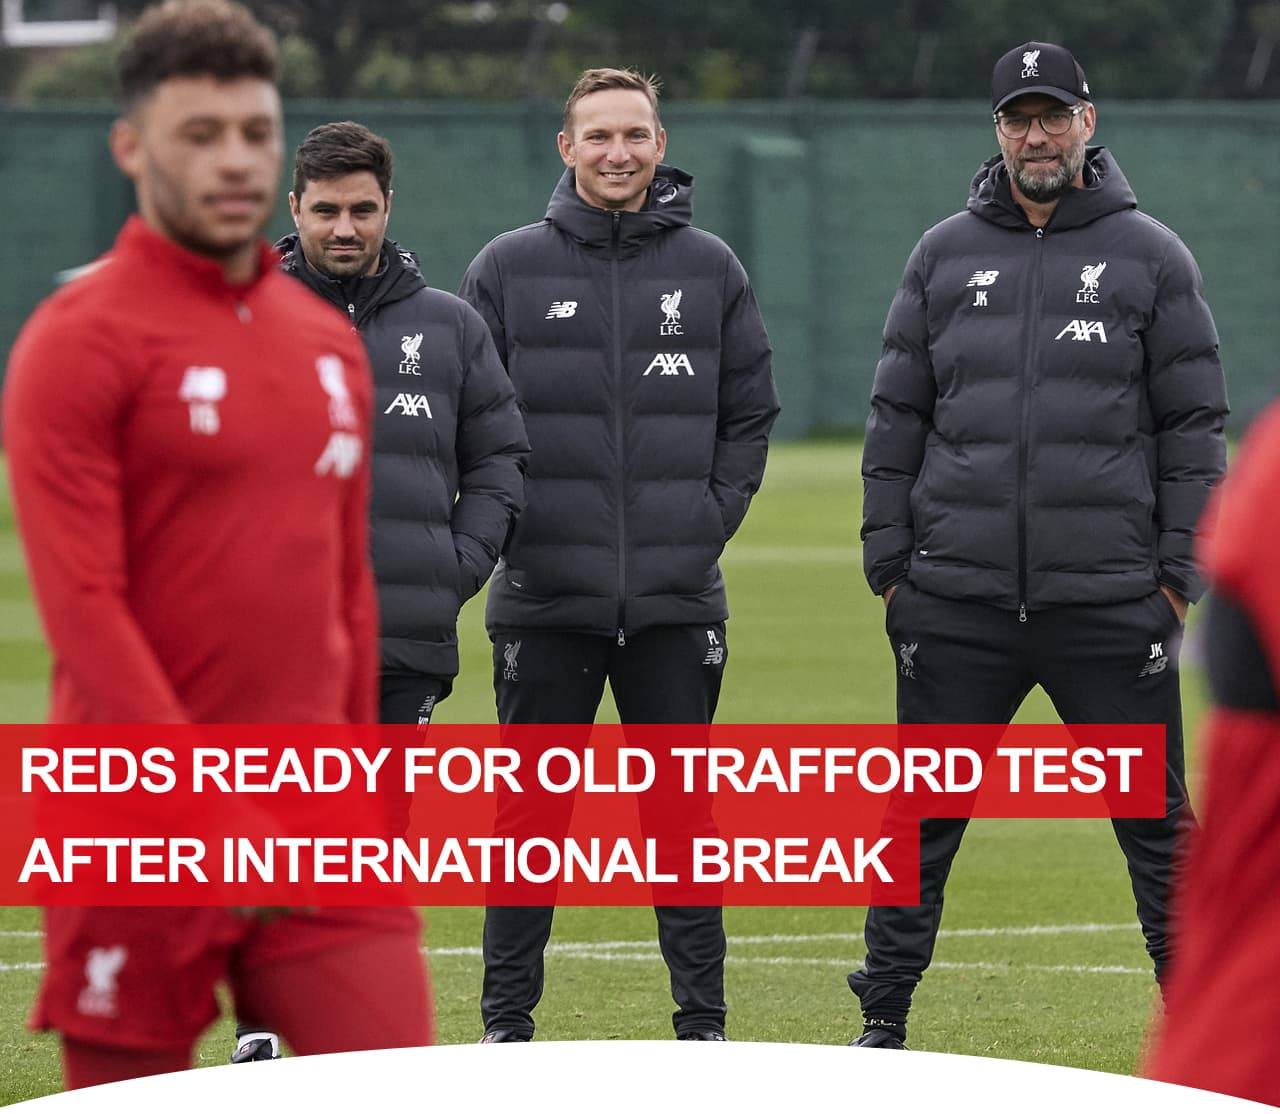 Reds ready for Old Trafford test after international break